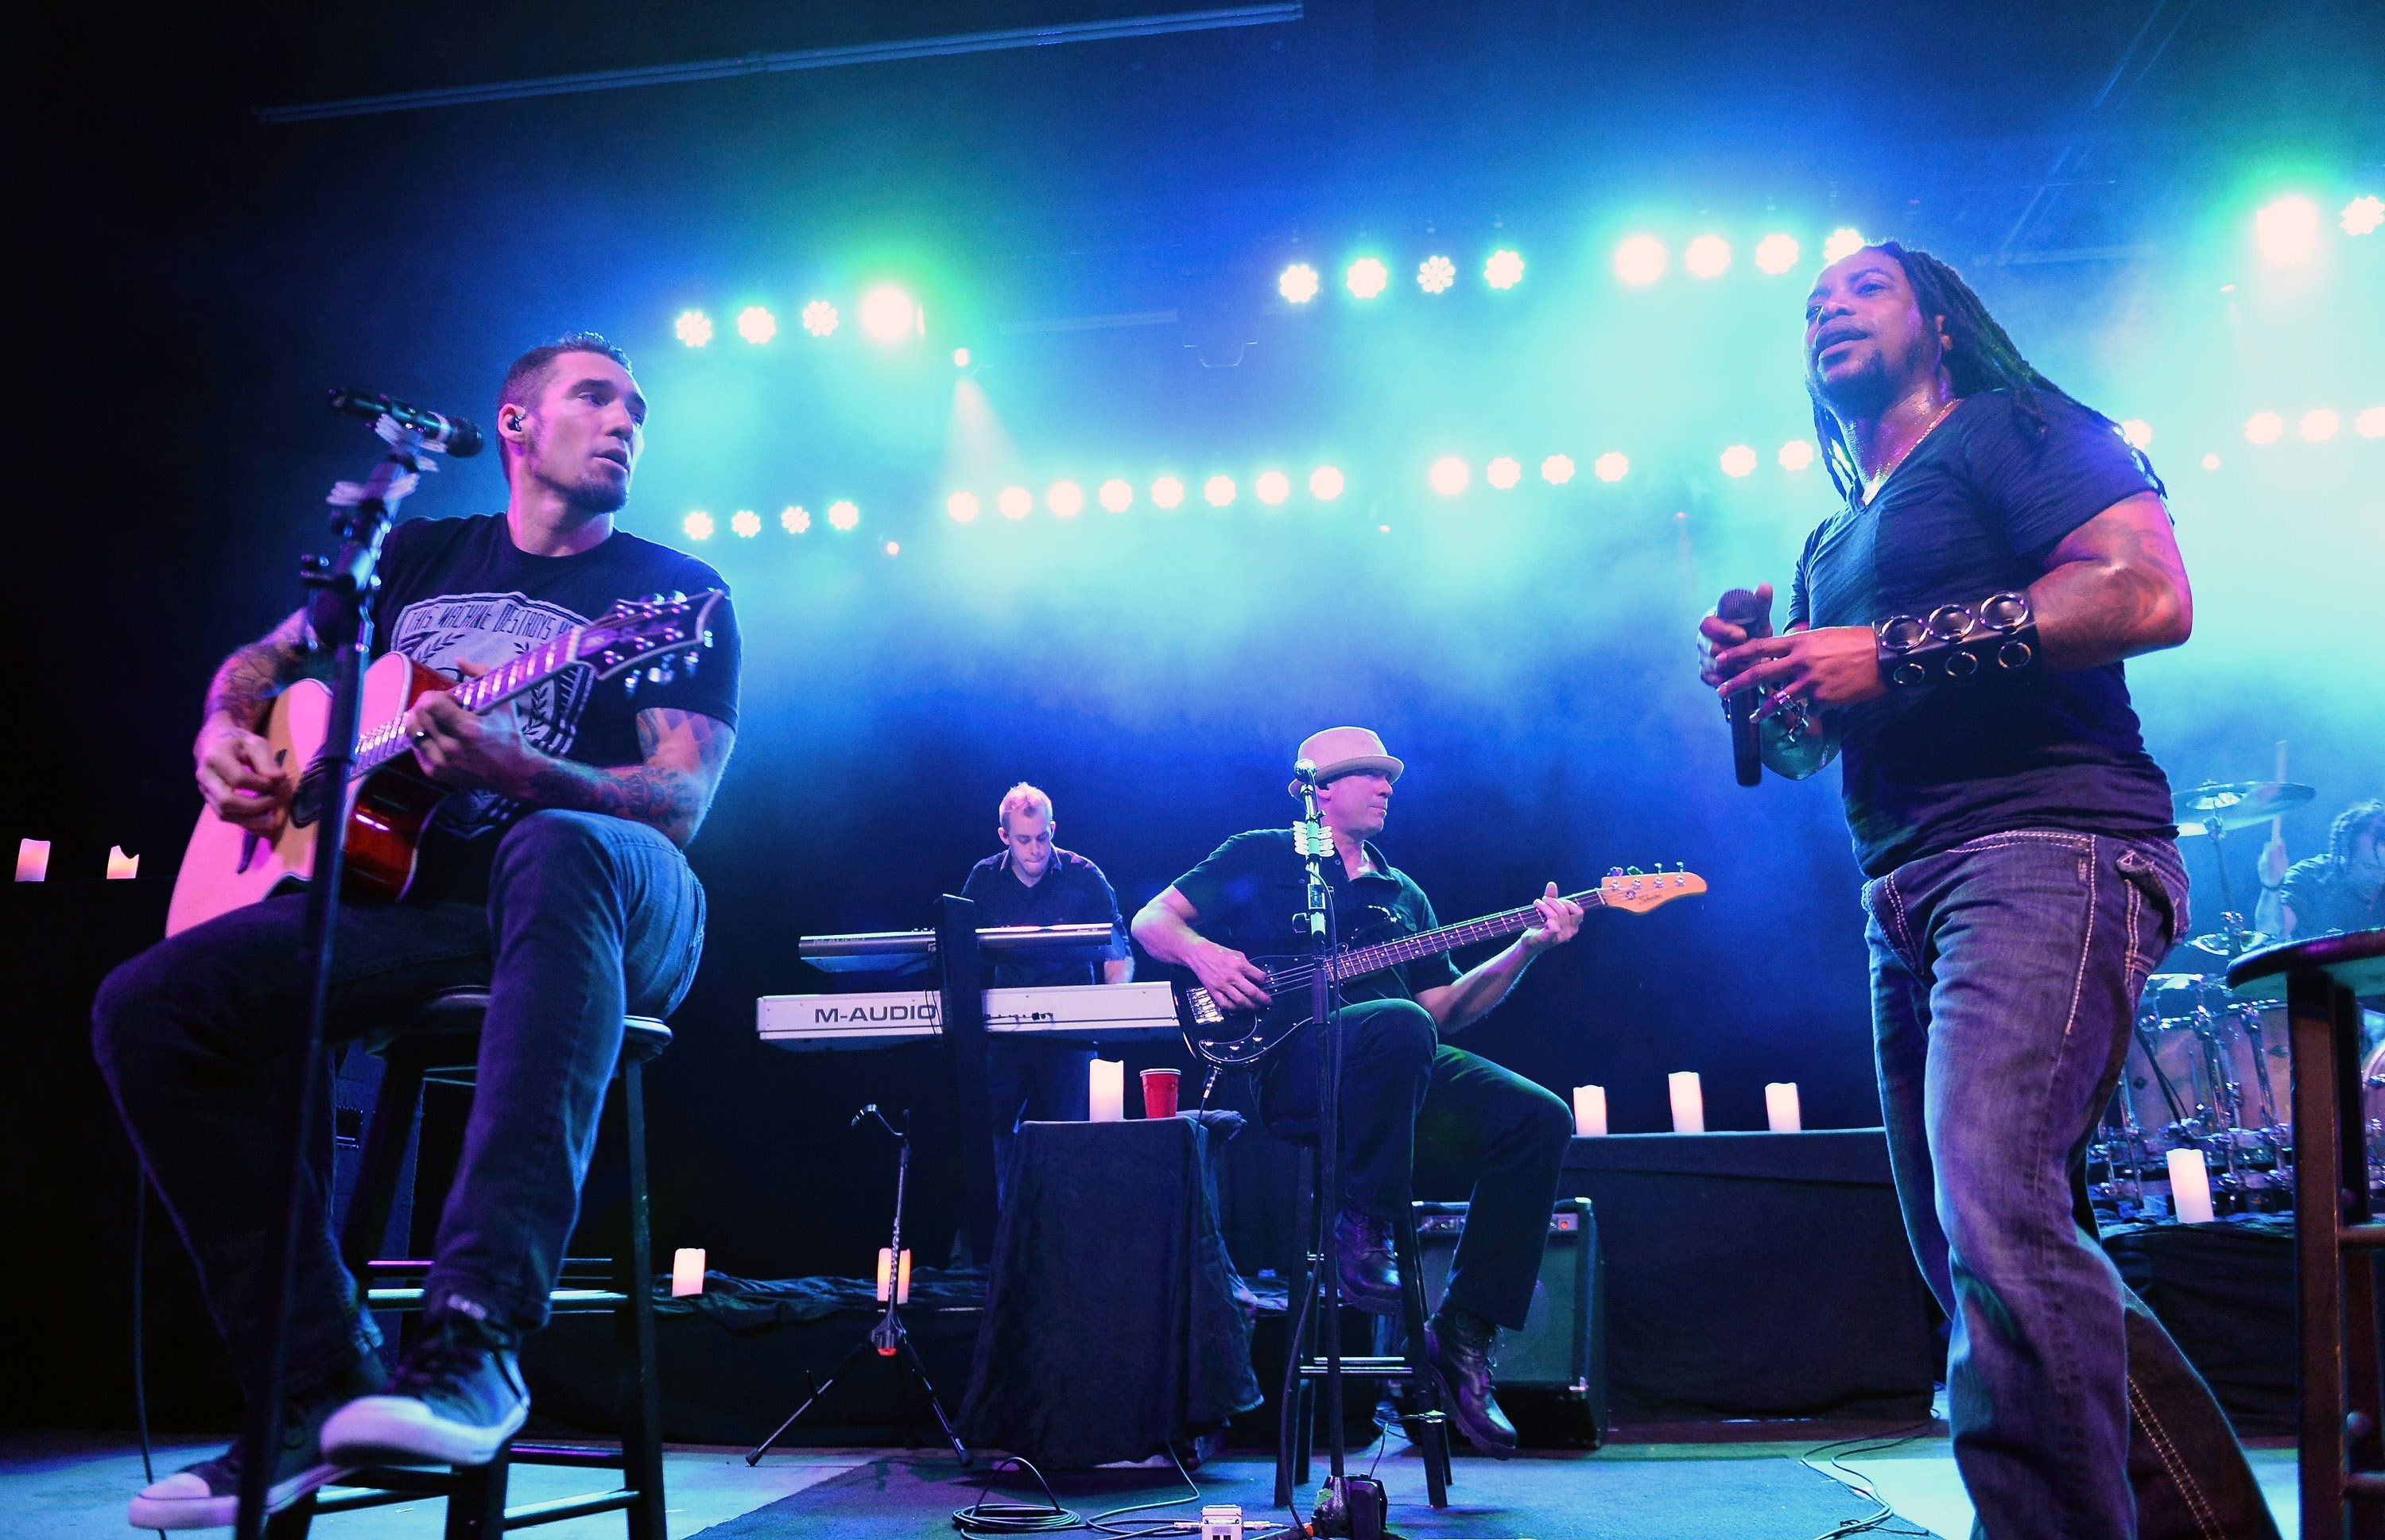 TEMPE, AZ - APRIL 08: (L-R) Guitarist Clint Lowery, touring keyboardist Kurt Wubbenhorst, bassist Vince Hornsby and singer Lajon Witherspoon of Sevendust perform during an acoustic concert at the Marquee Theatre as the band tours in support the upcoming album 'Time Travelers & Bonfires' on April 8, 2014 in Tempe, Arizona.